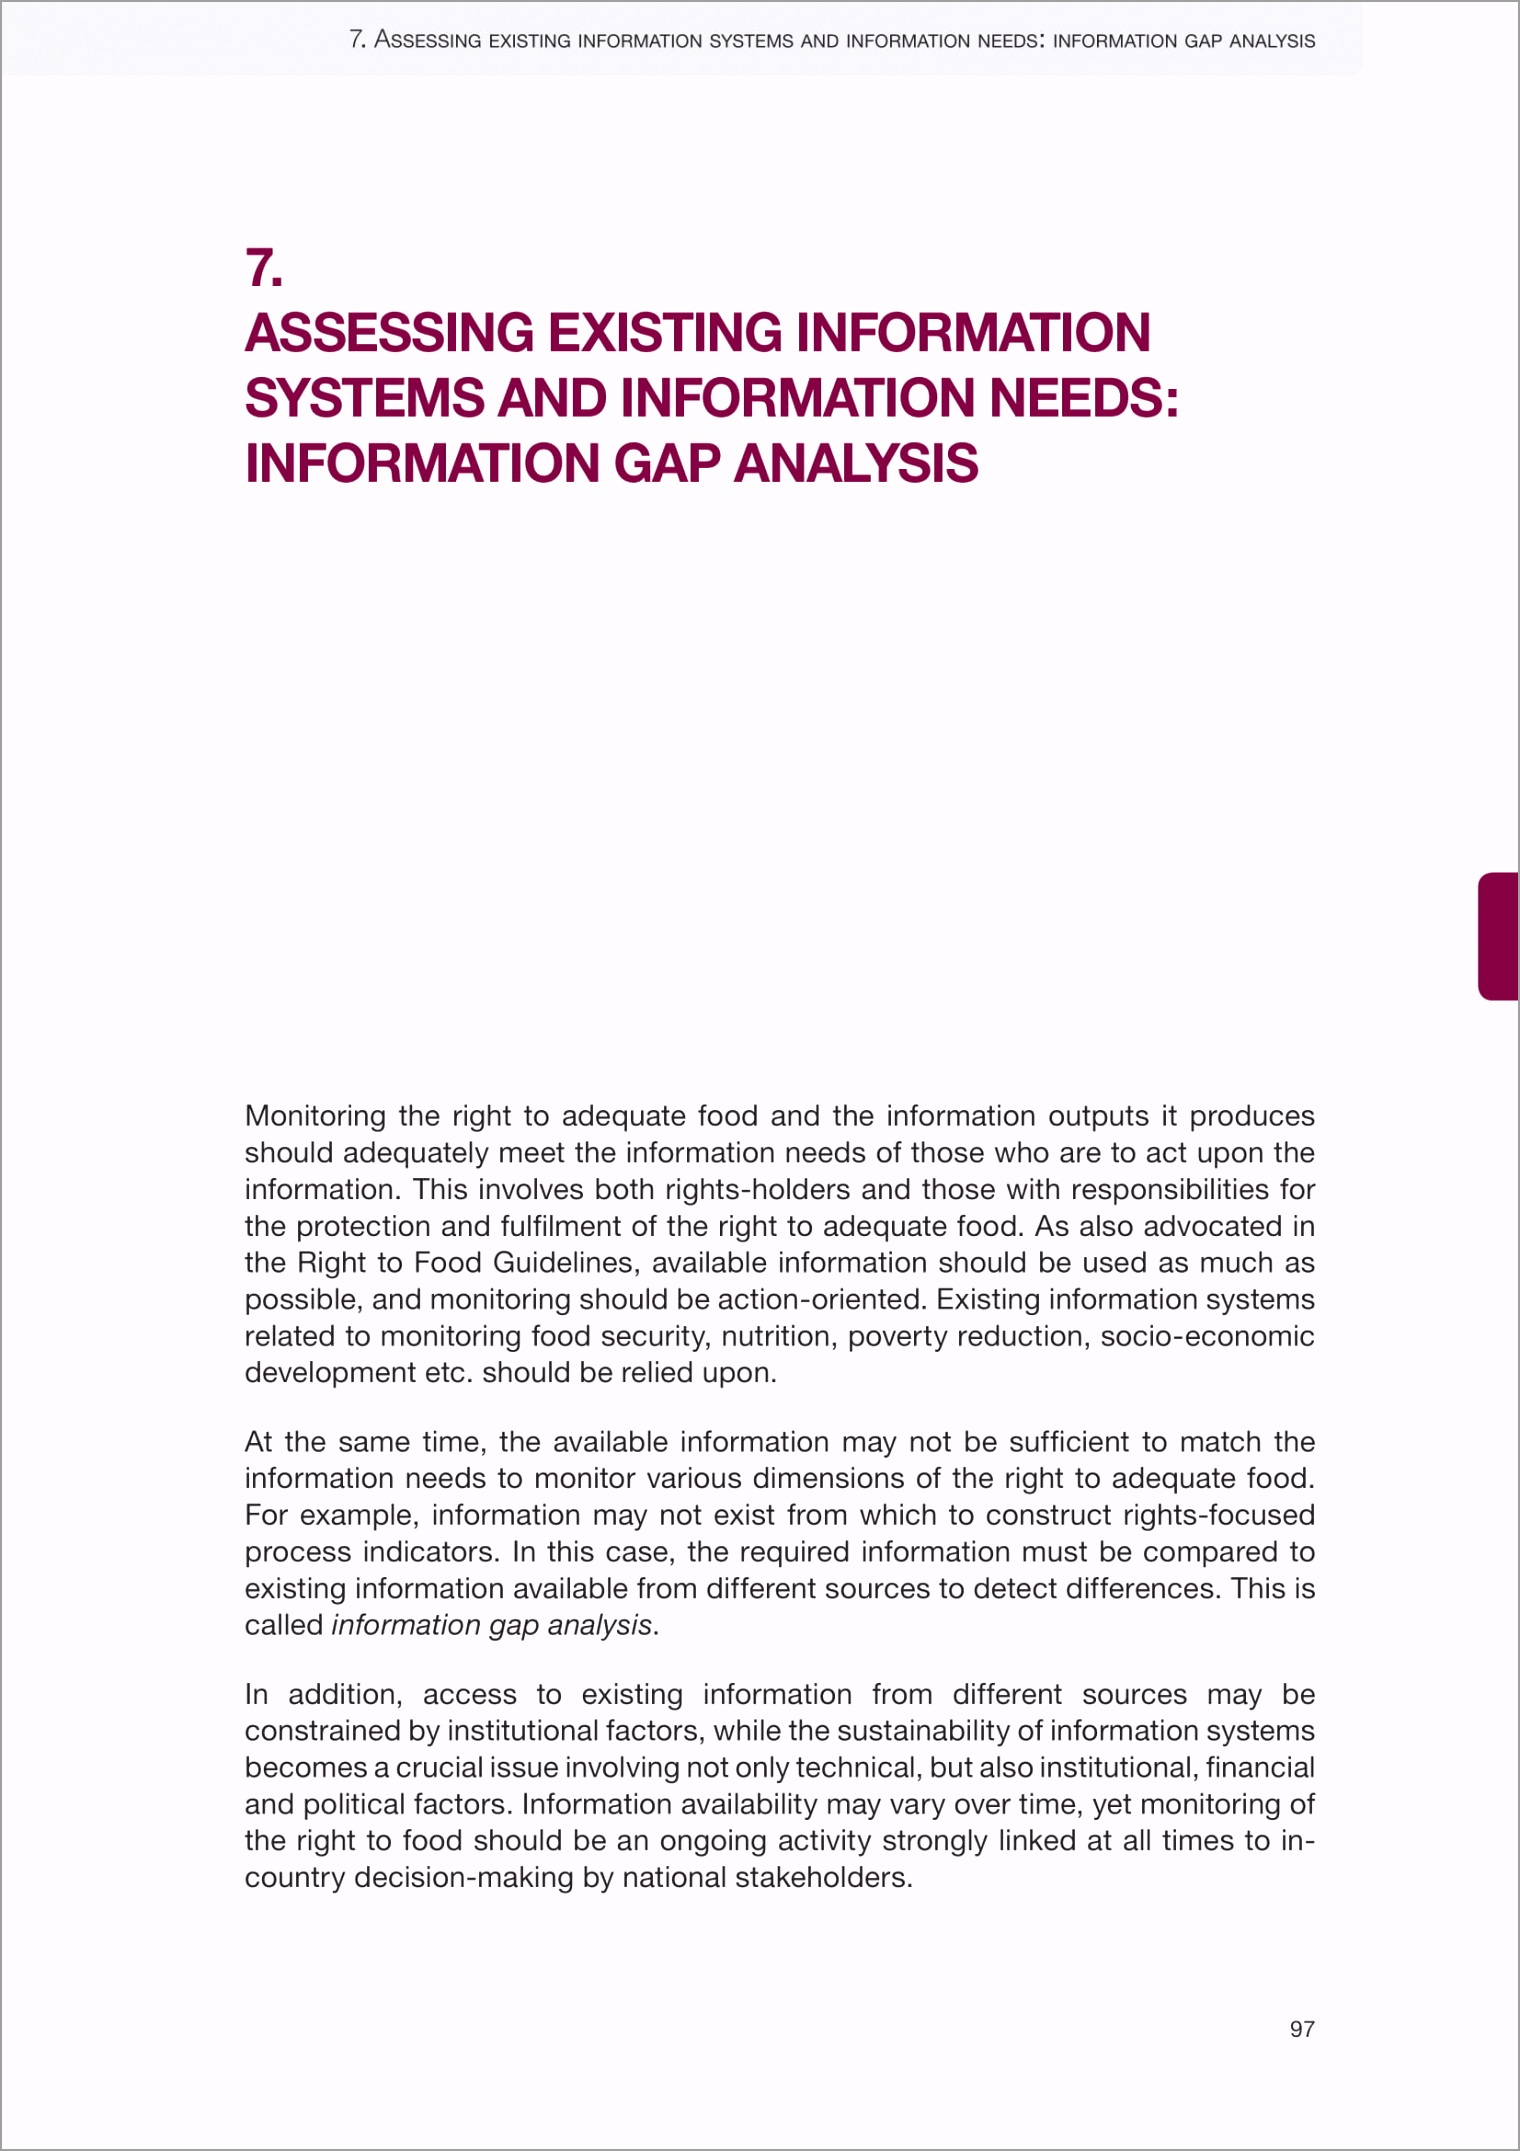 Assessing Existing Information Systems and Information Needs Information Gap Analysis Example 01 rpart